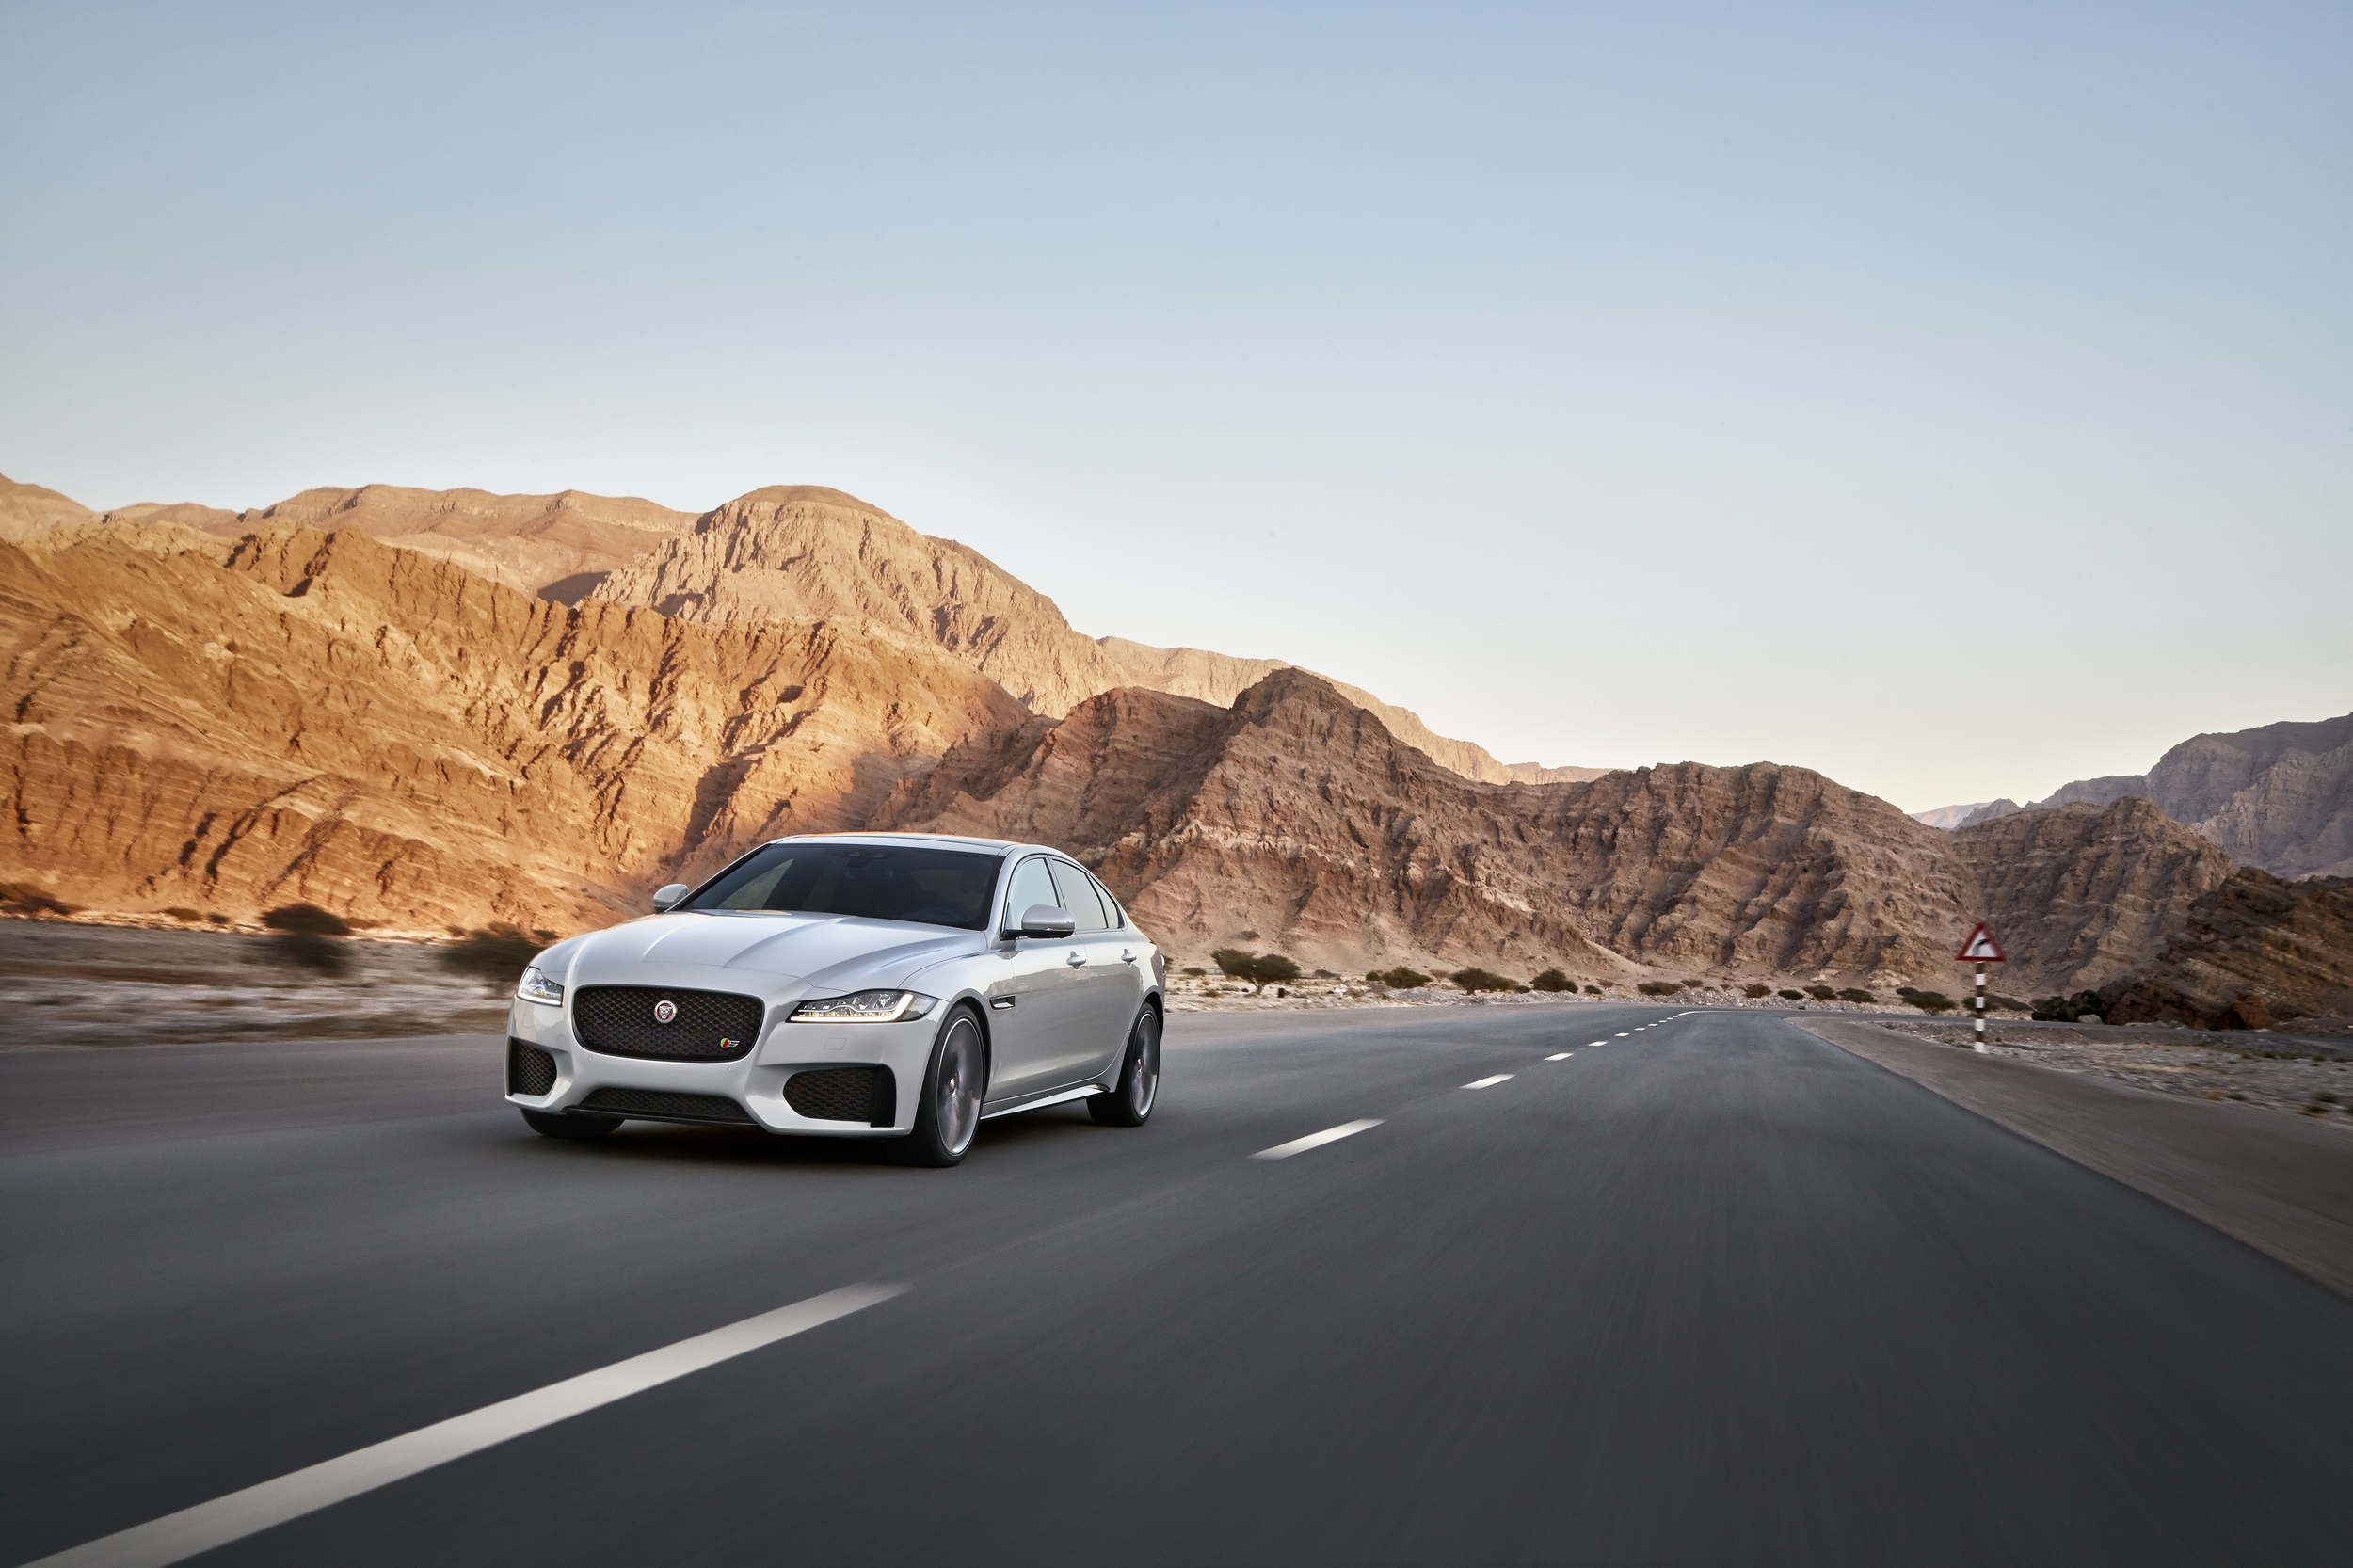 jaguar wallpapers sportbrake s cars xf hd images wallpaper